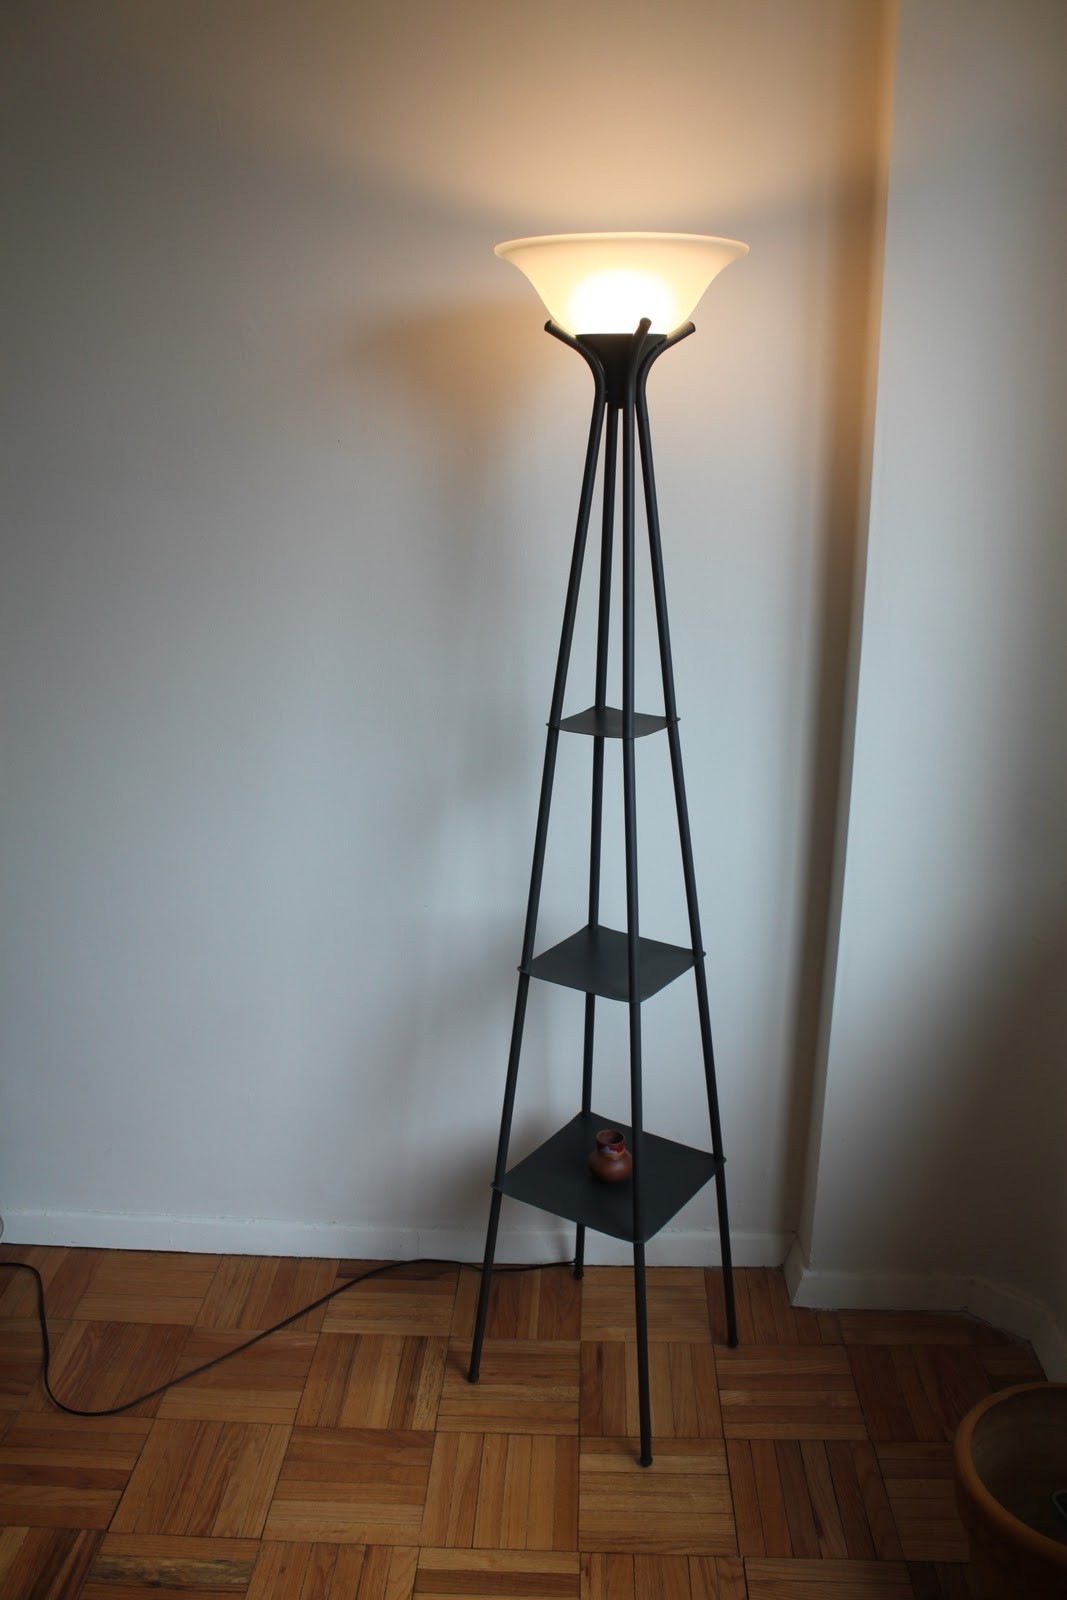 Foter With On Shelves Ideas Lamp Floor IvYfygb76